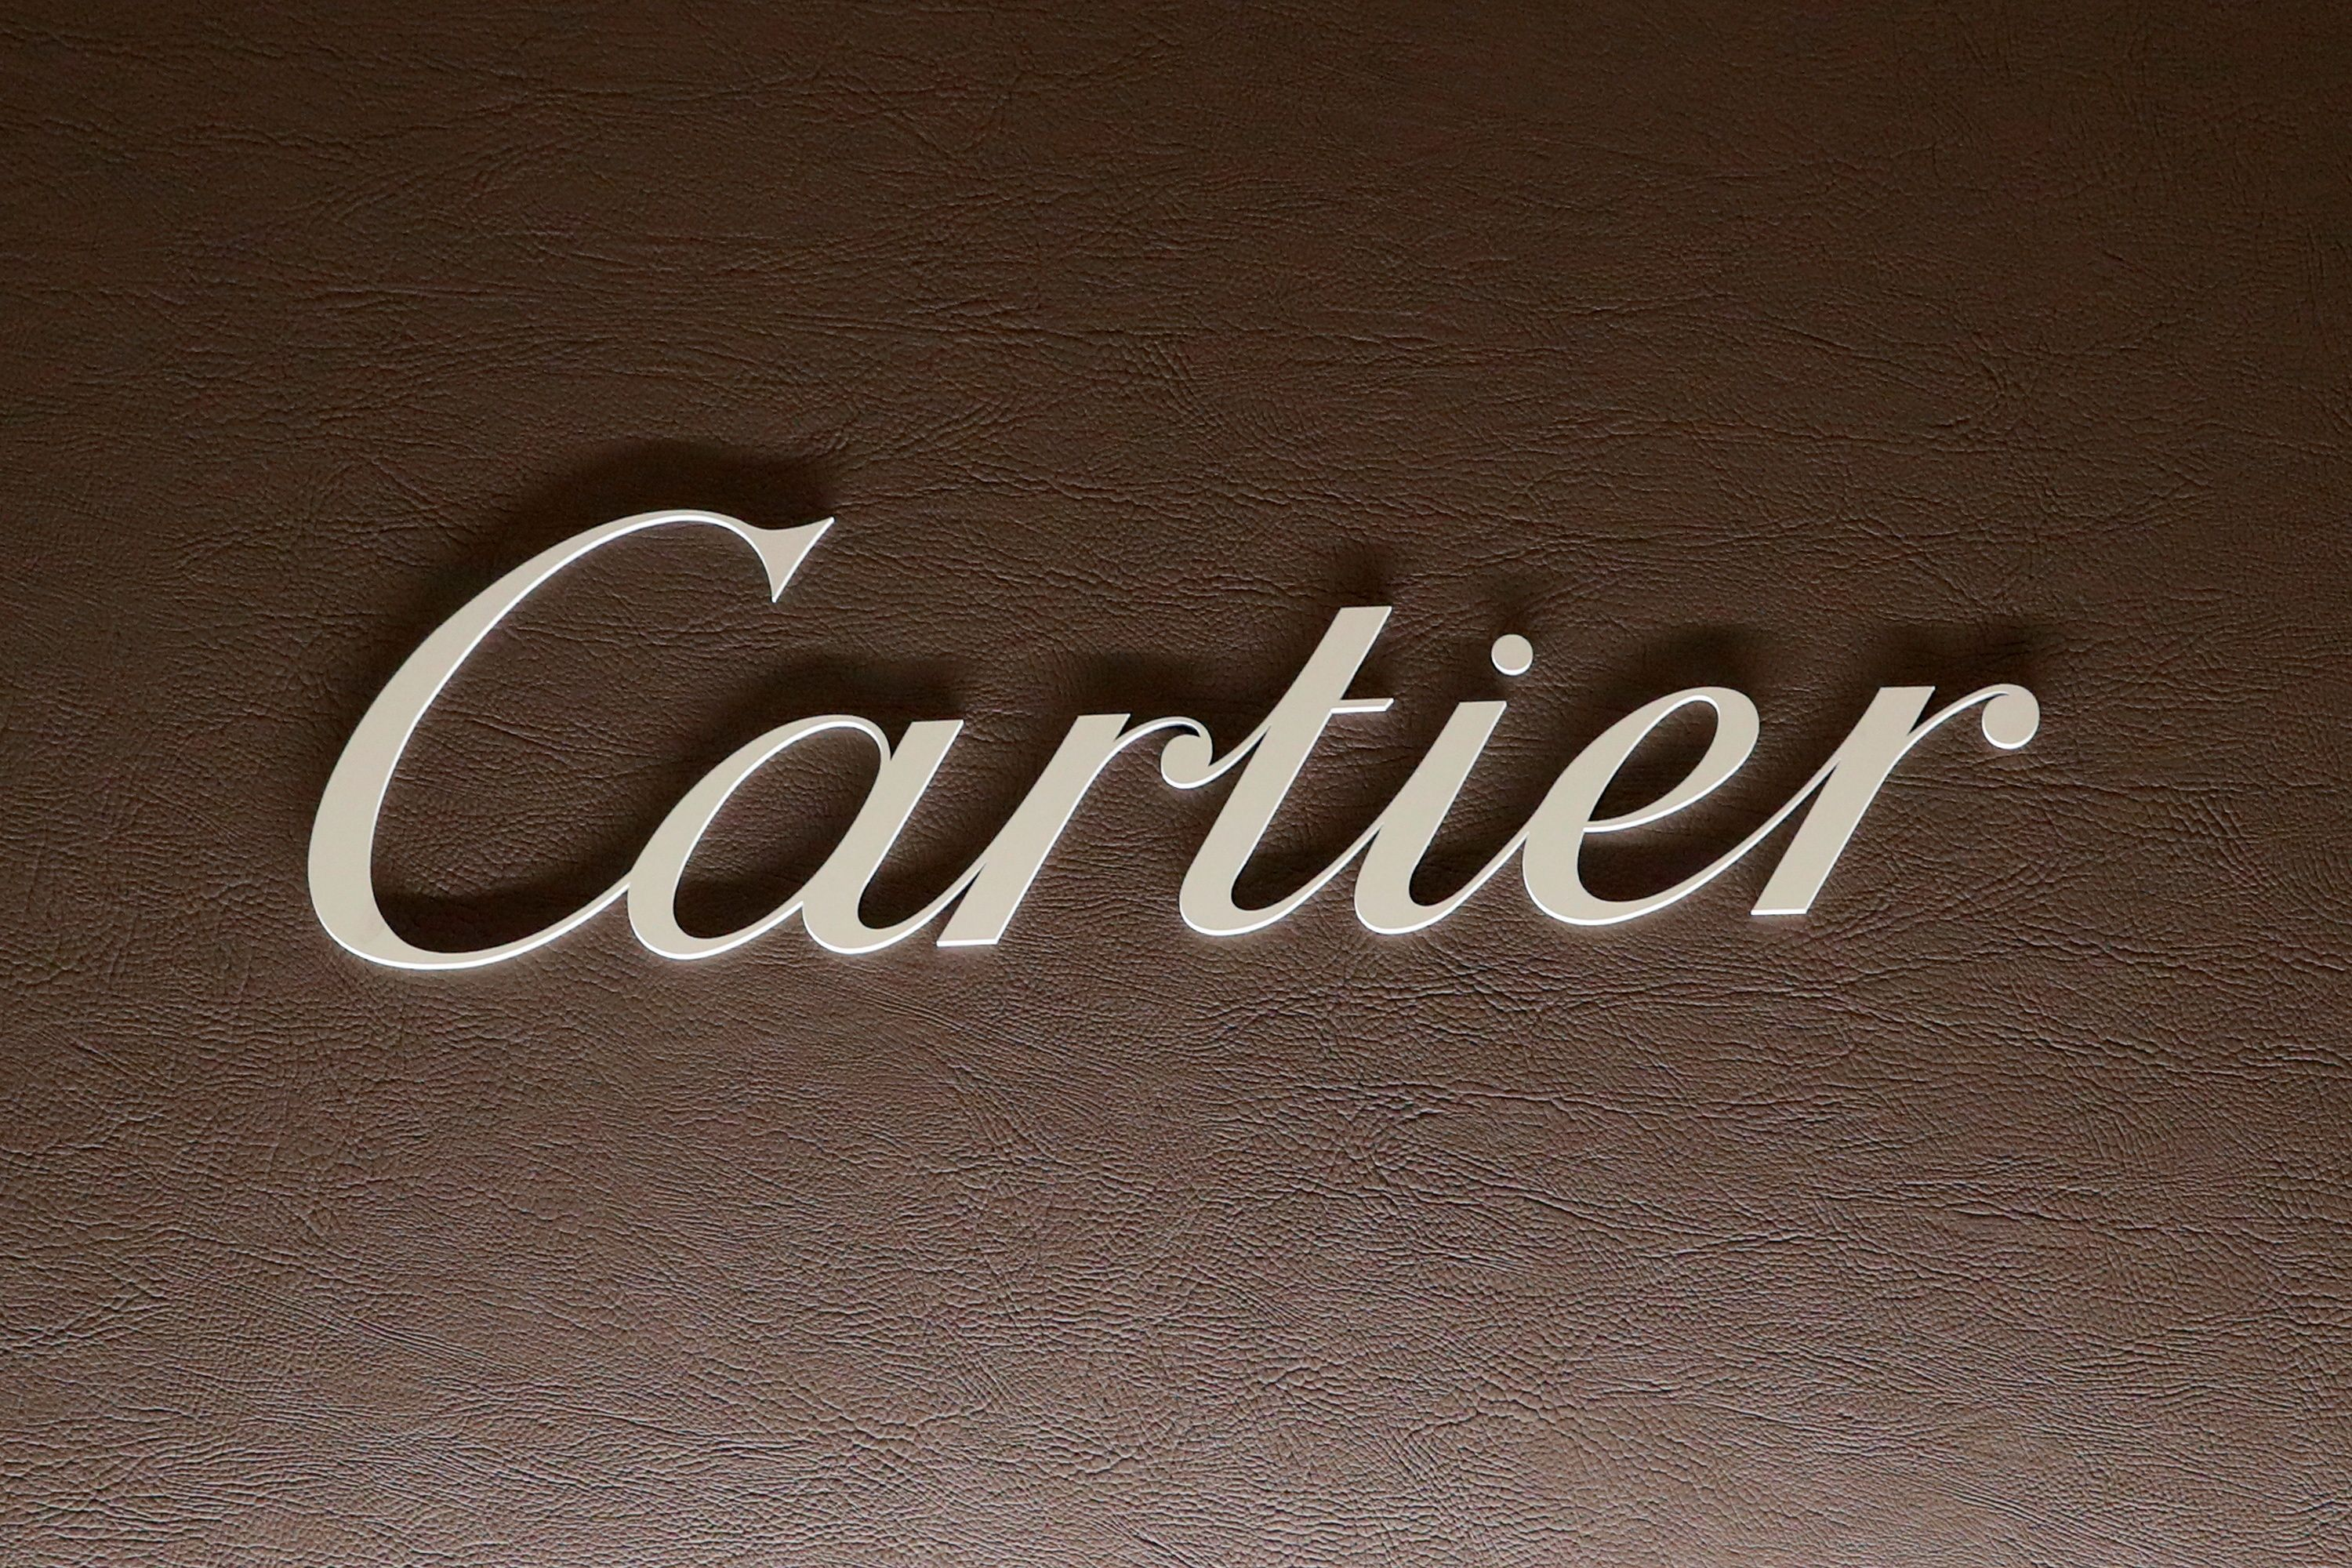 The logo of Cartier, owned by the Richemont group, is pictured at the